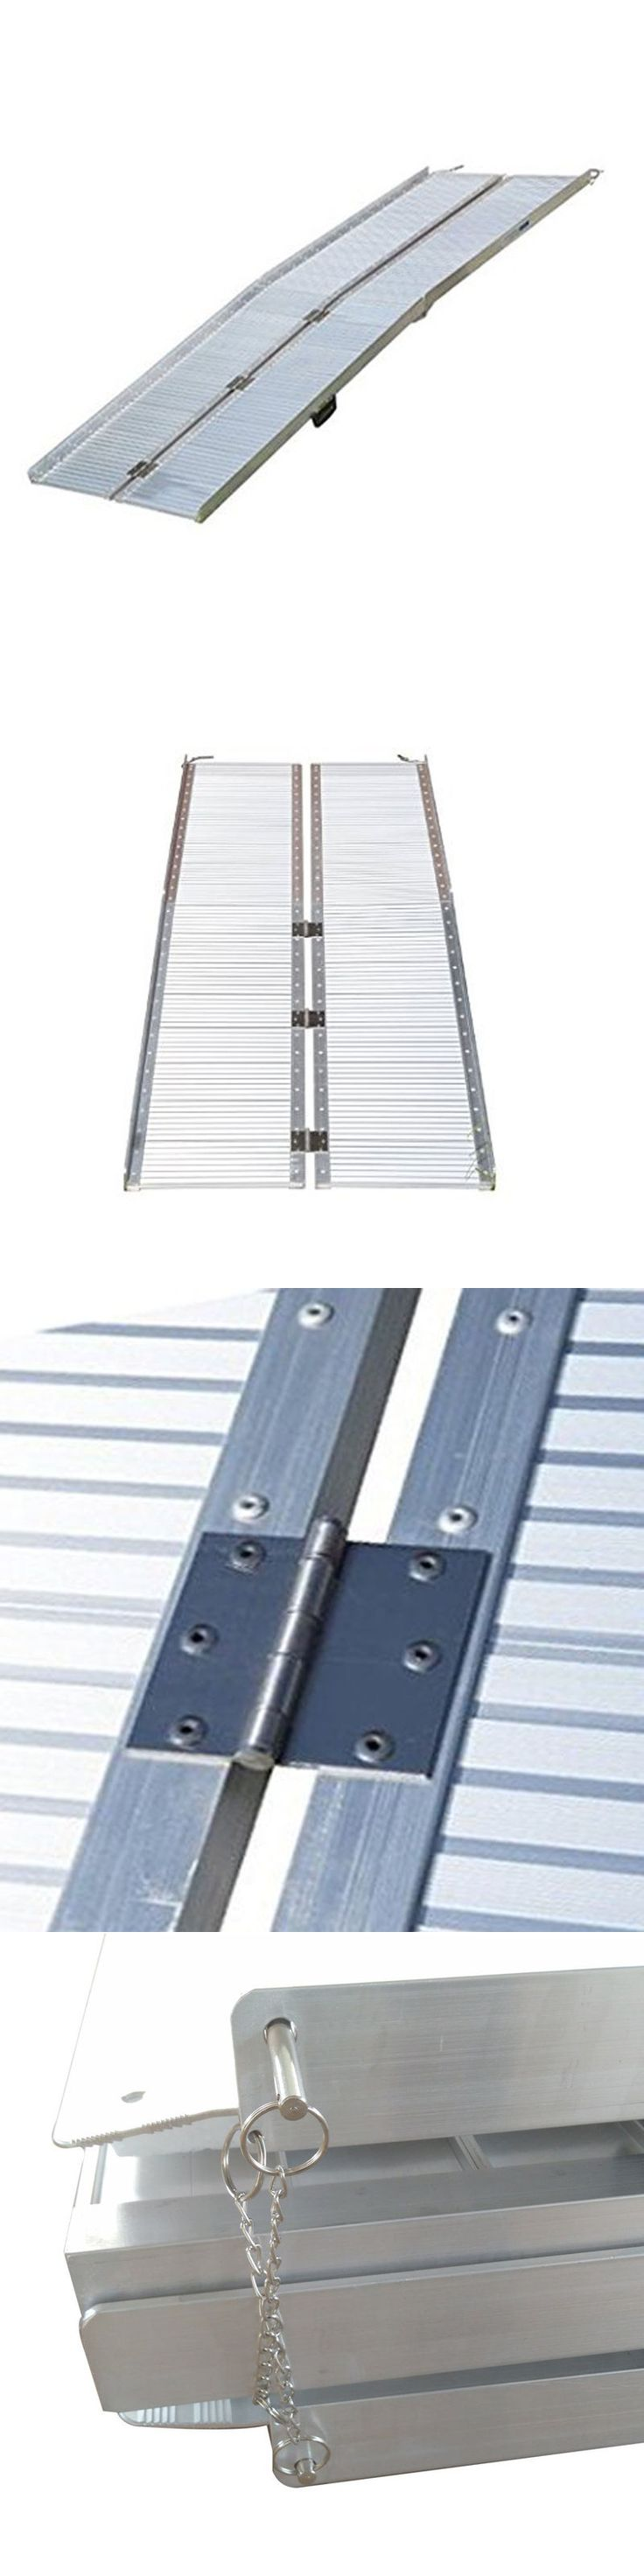 Access Ramps: 10 Folding Portable Suitcase Mobility Wheelchair Threshold Ramp New BUY IT NOW ONLY: $235.55